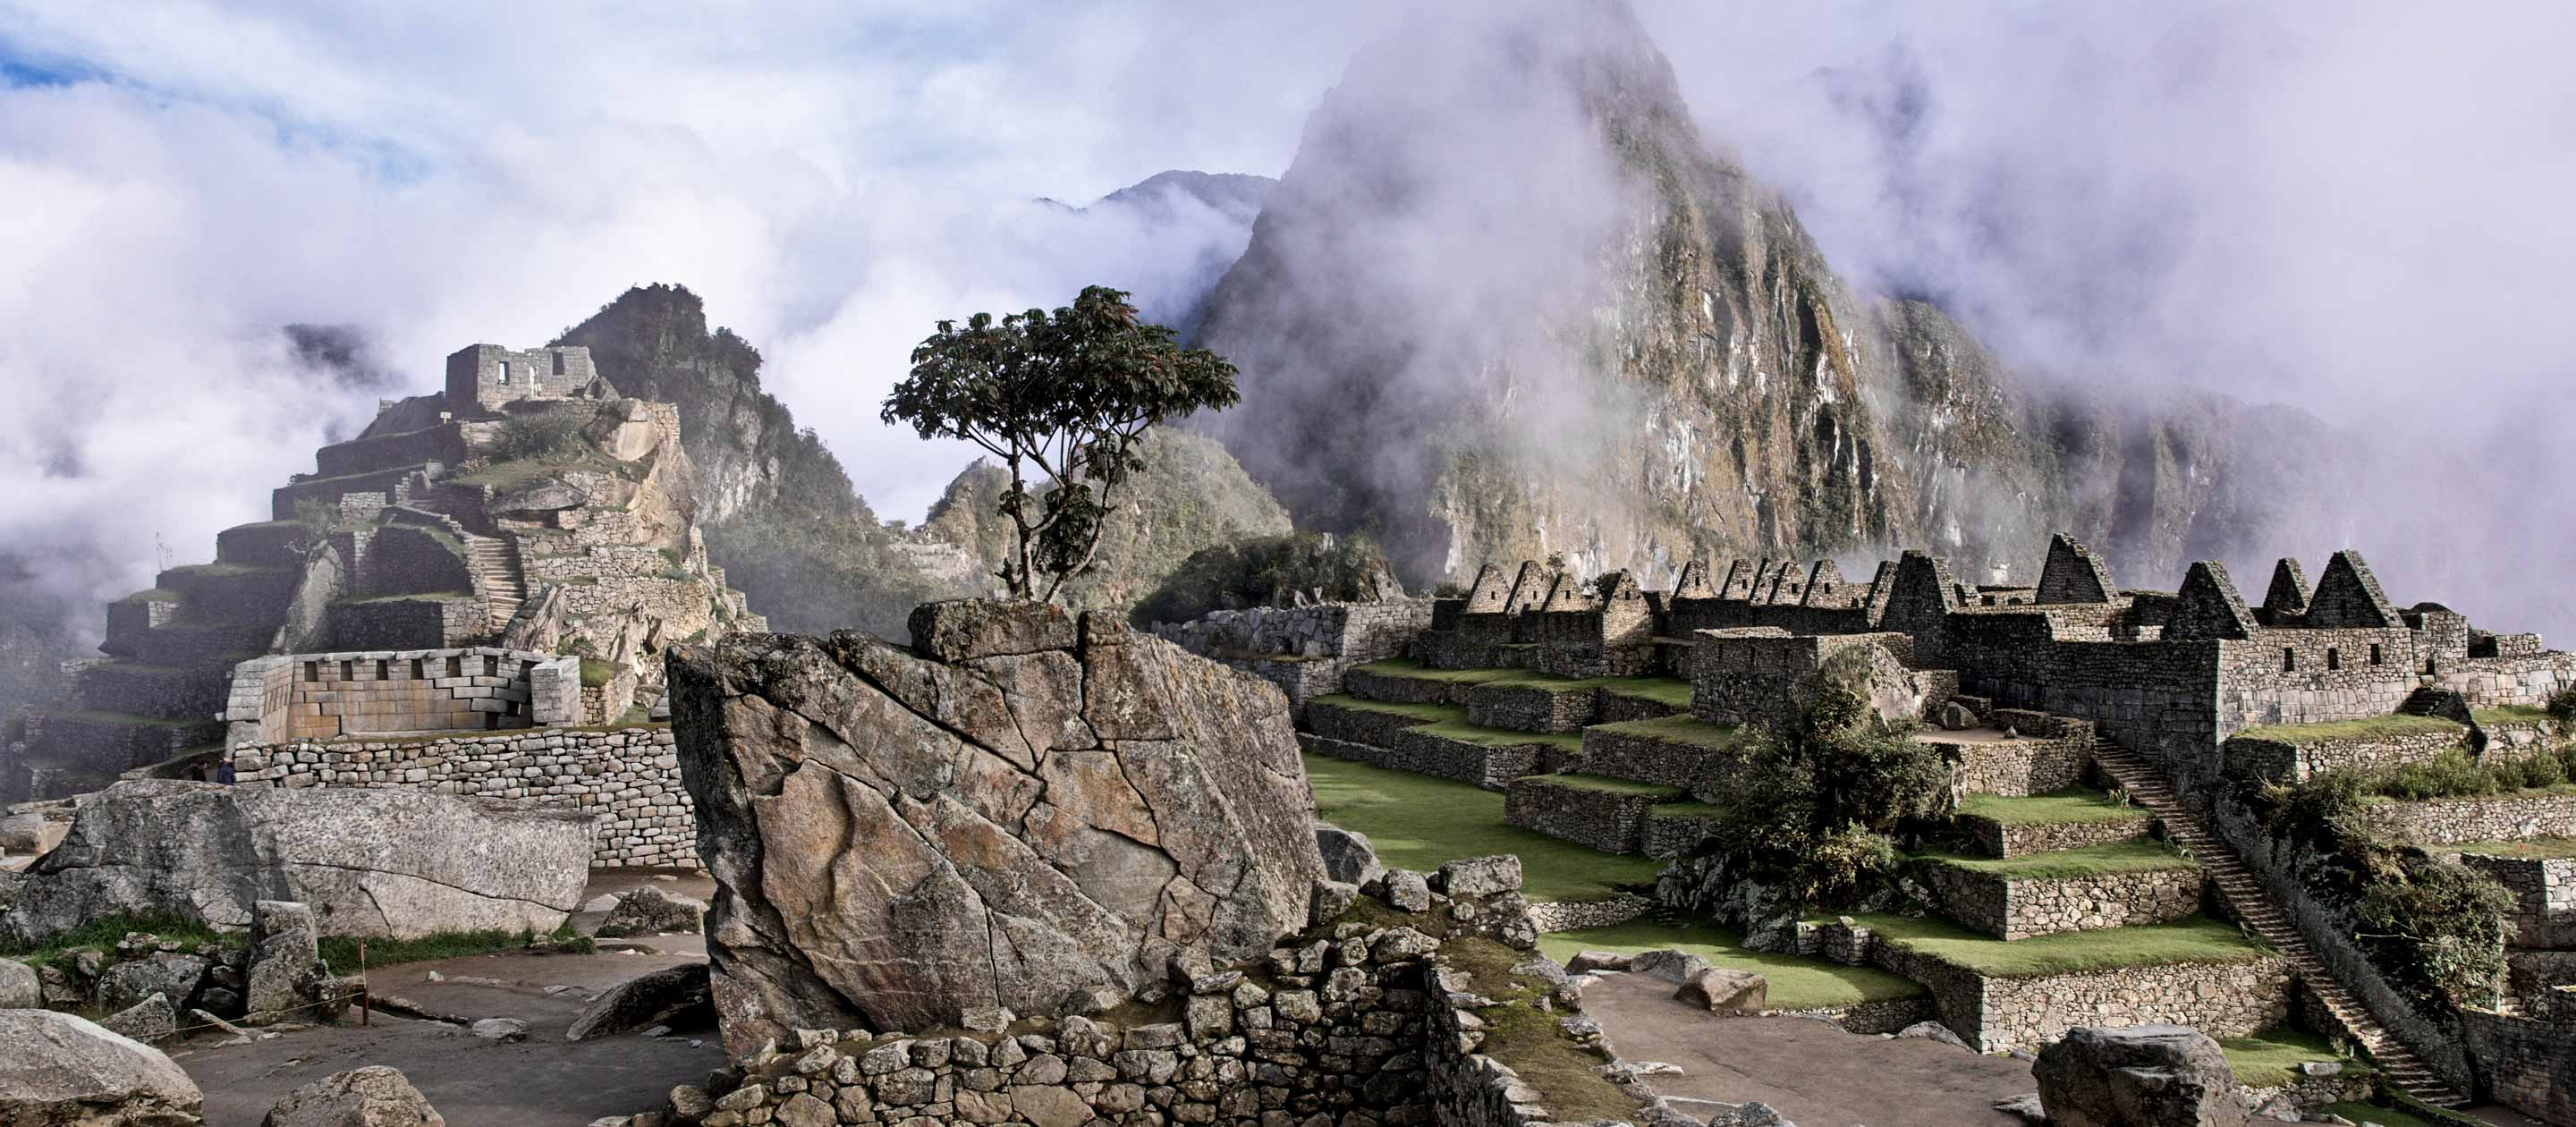 Ruins at the top of Machu Picchu, Peru